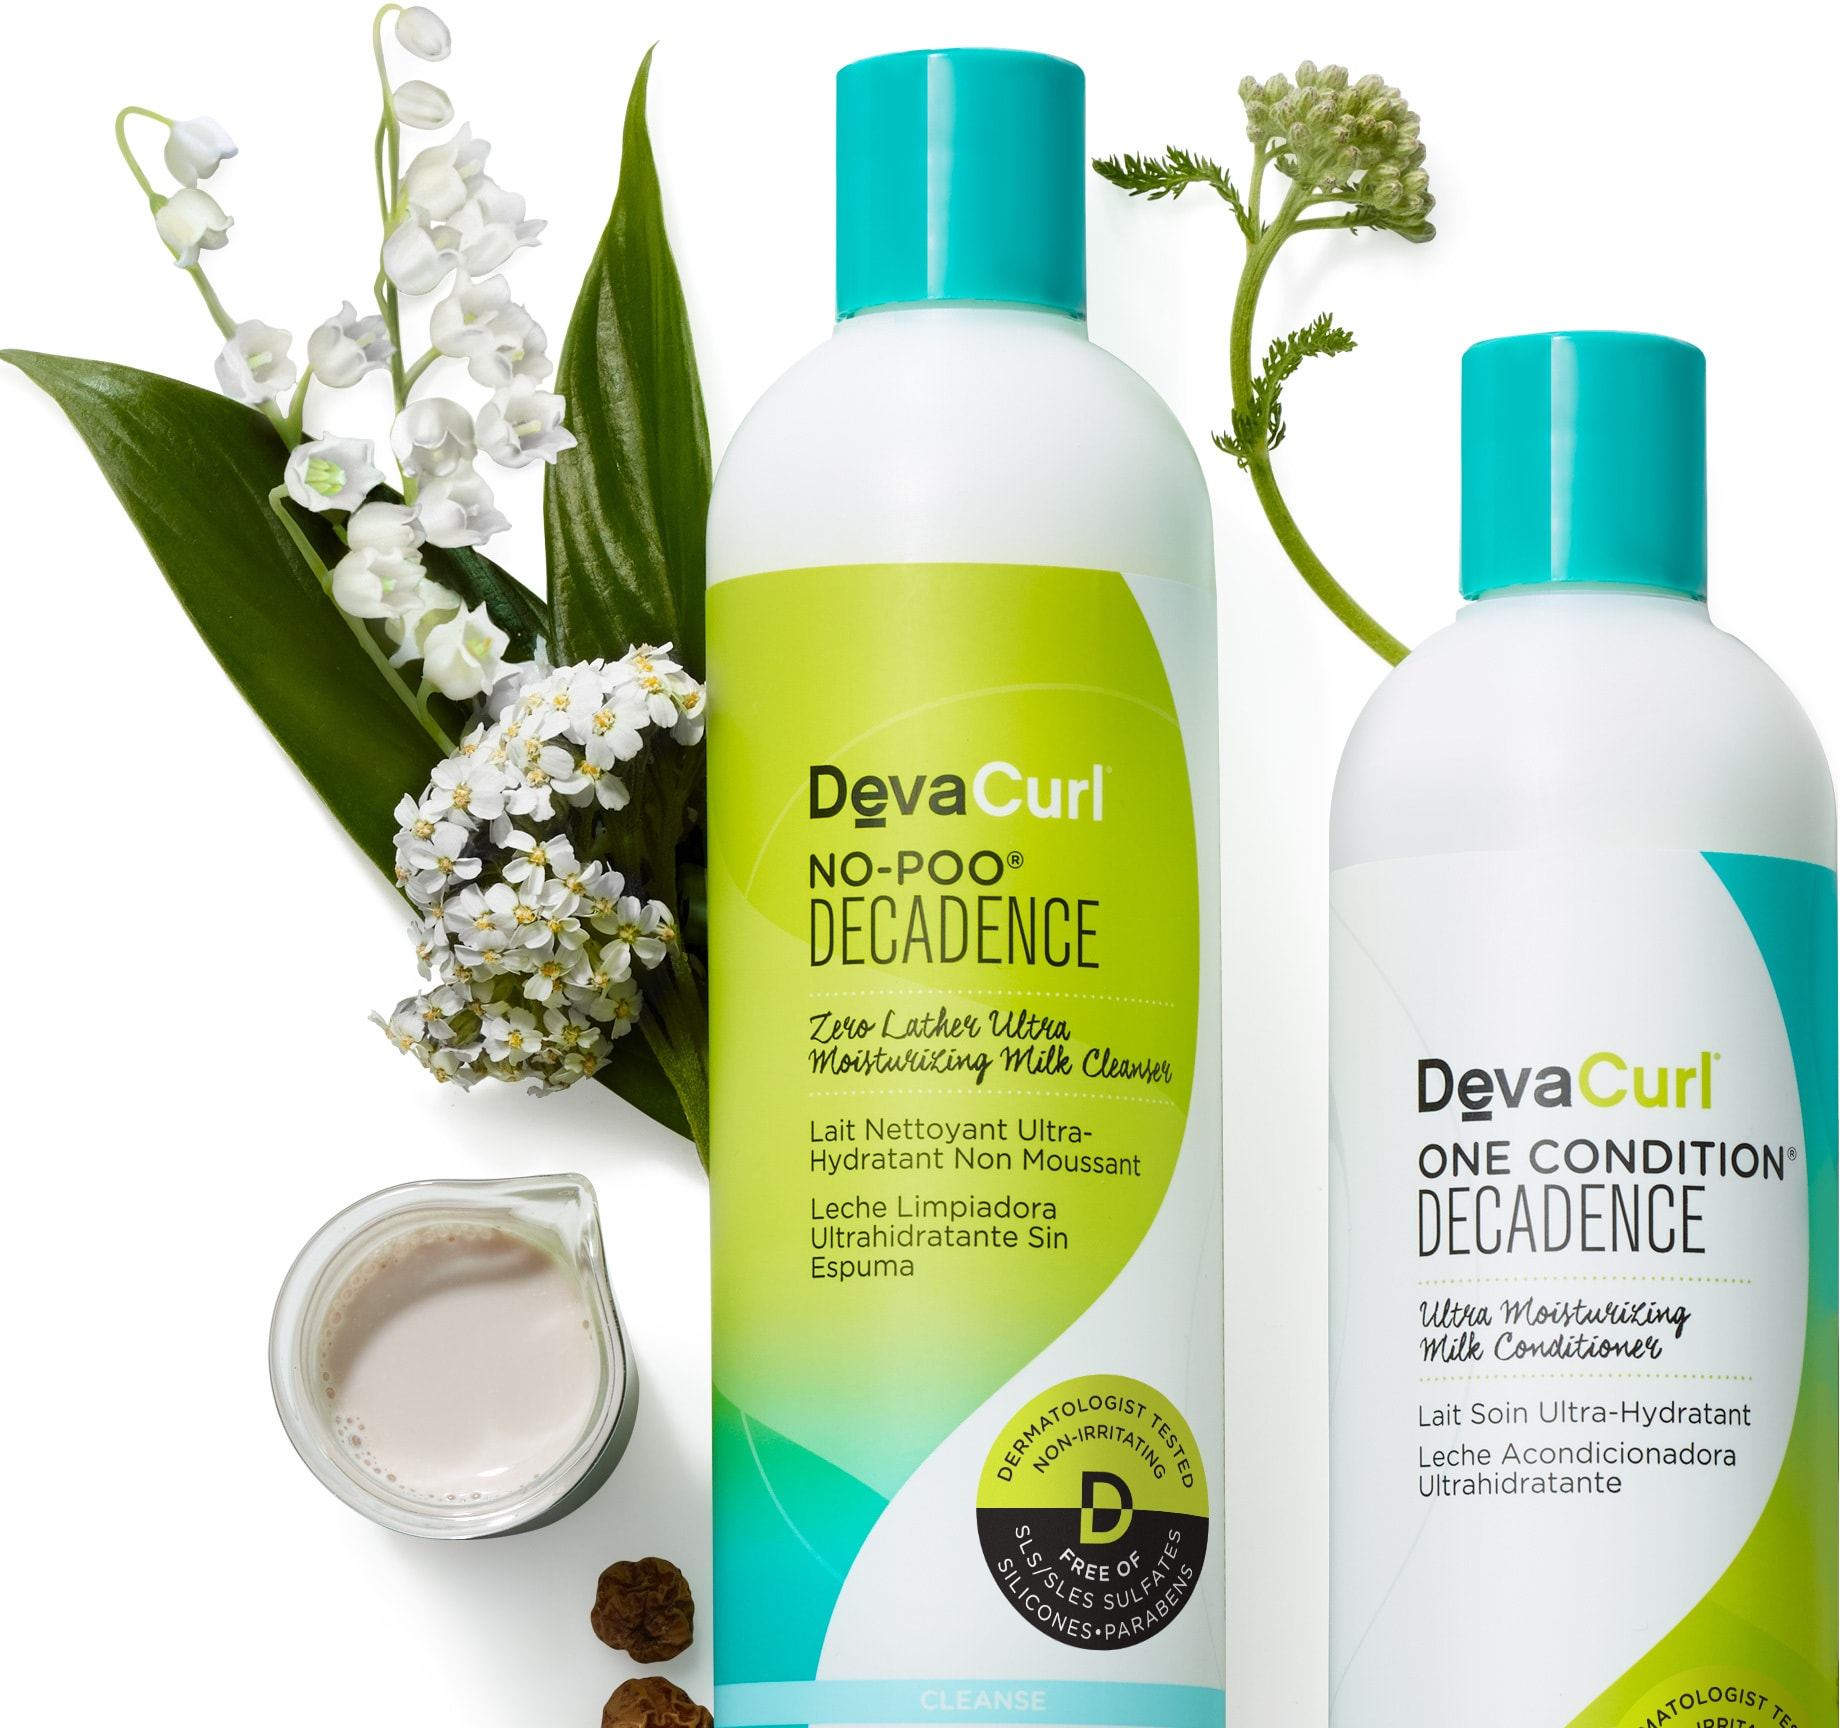 devacurl decadence cleanser & conditioner